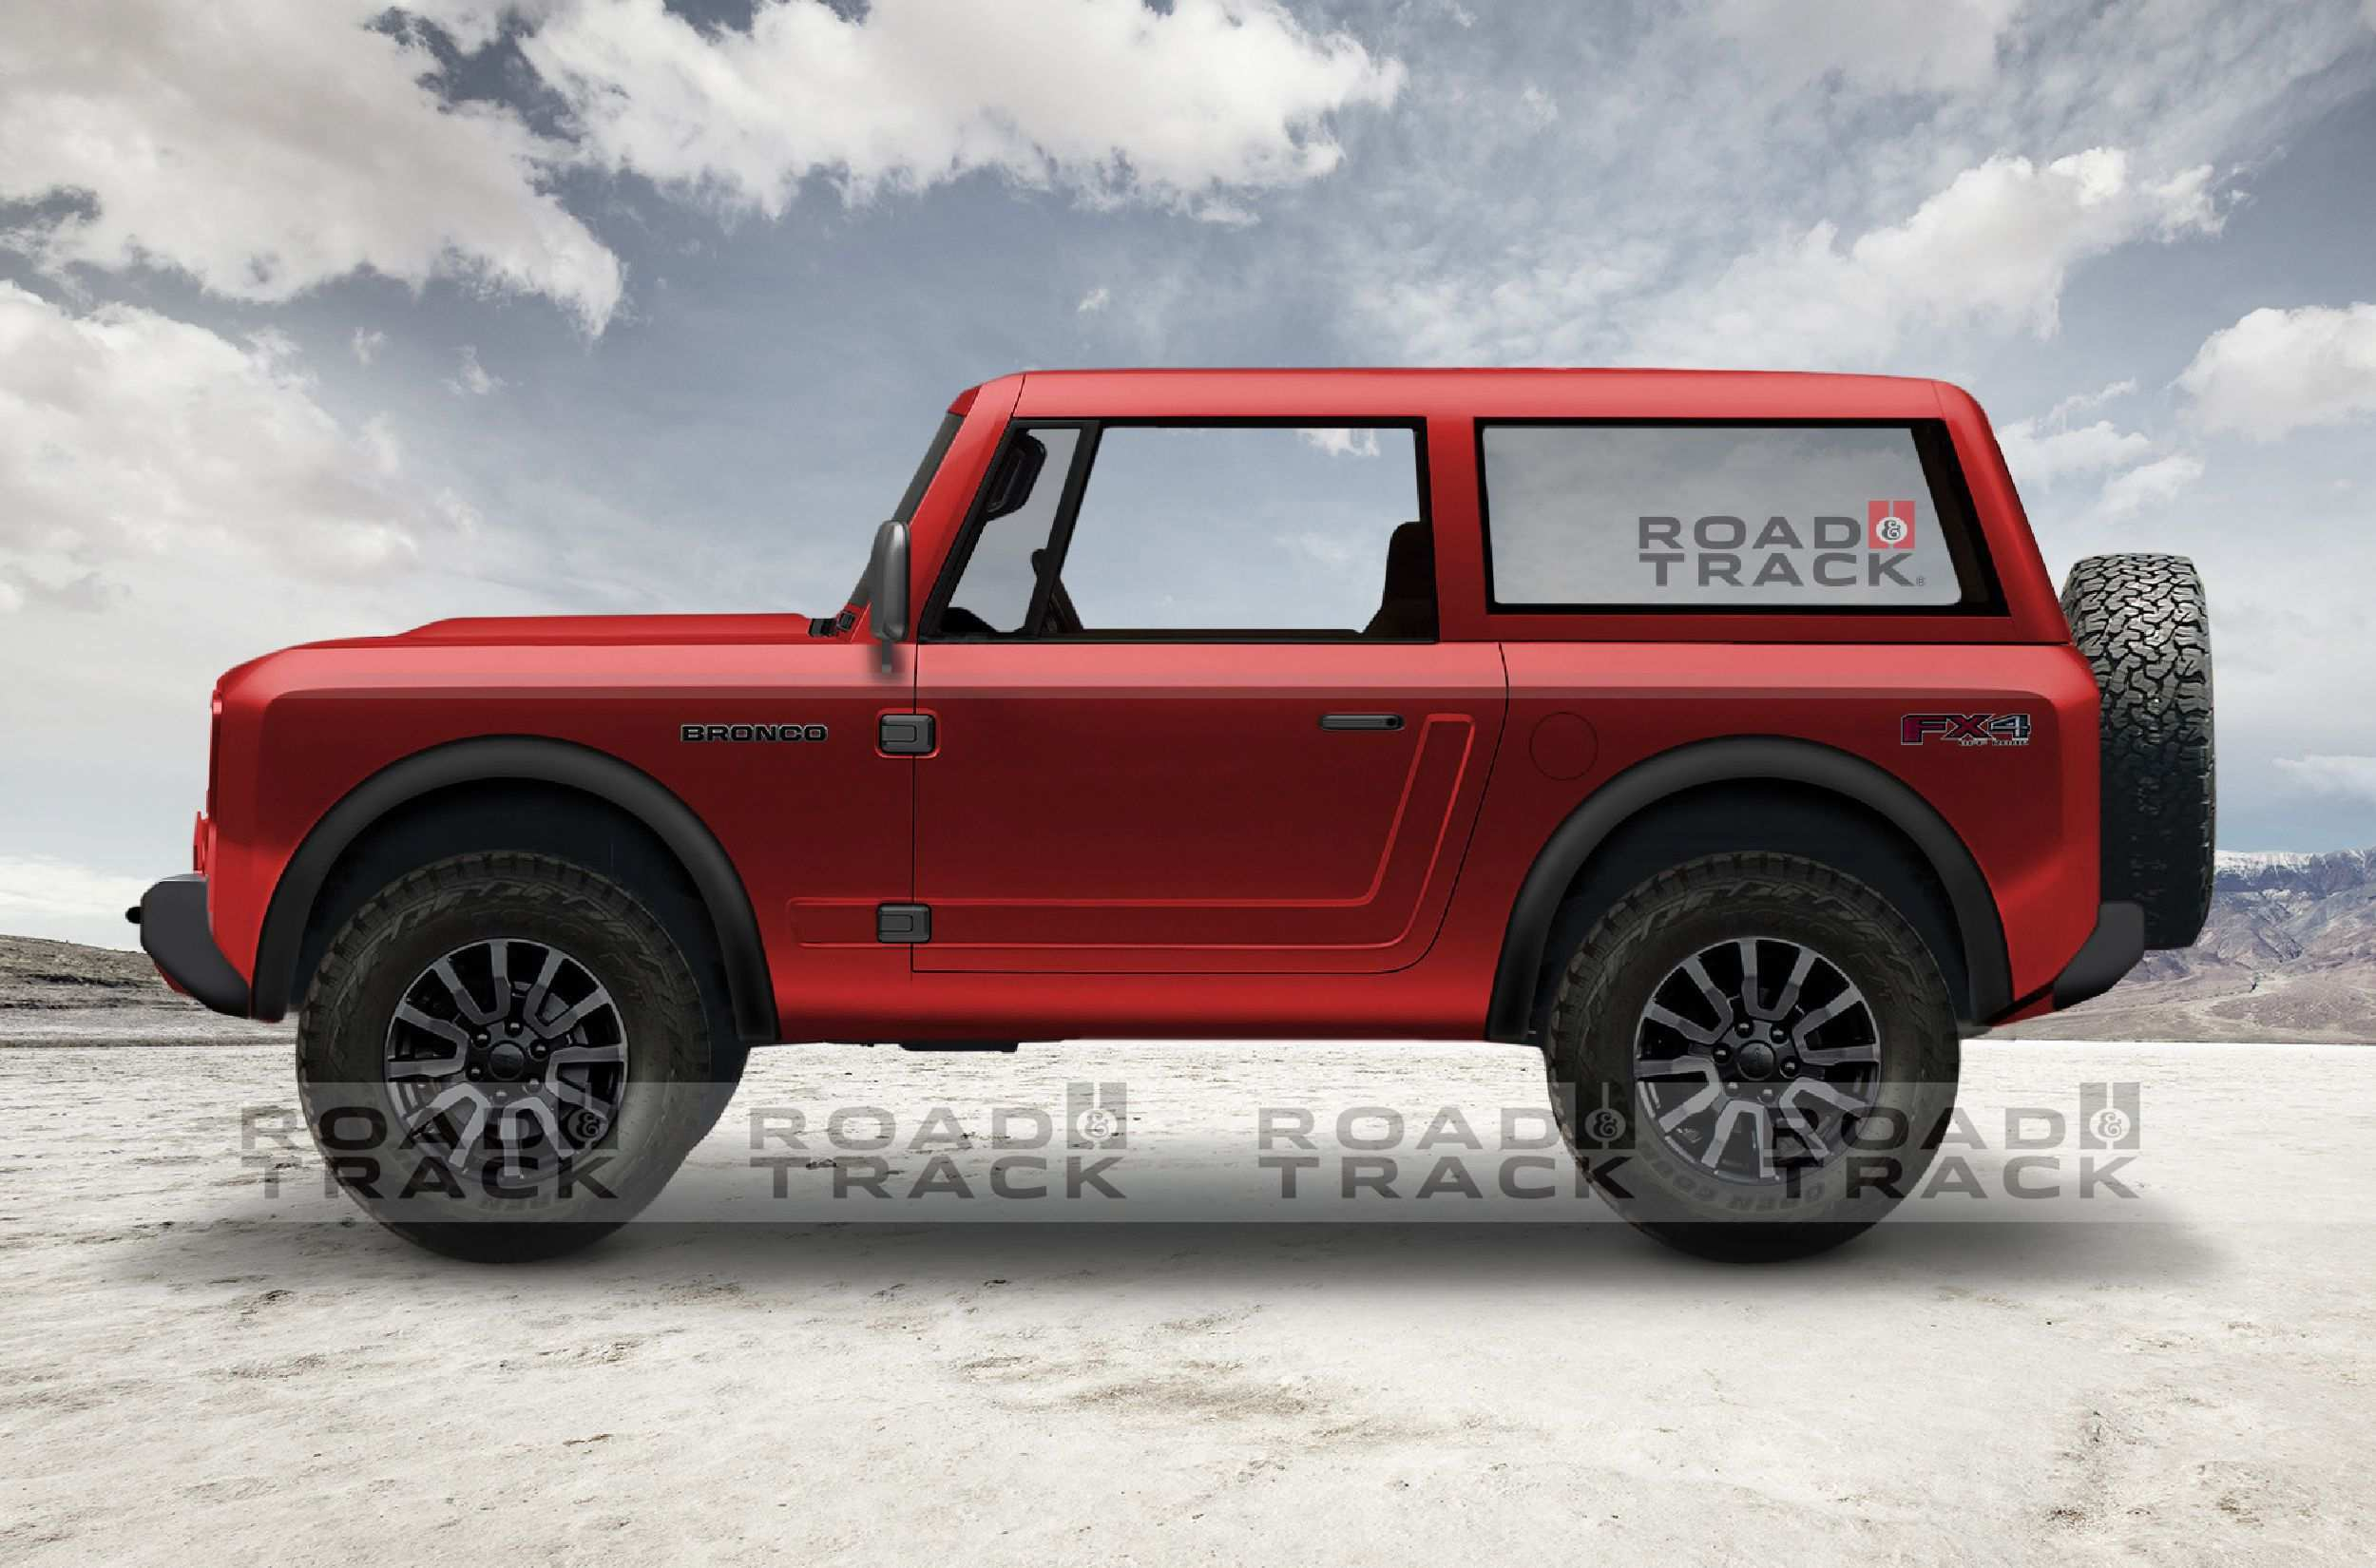 99 Concept of 2020 Ford Bronco Design New Concept with 2020 Ford Bronco Design